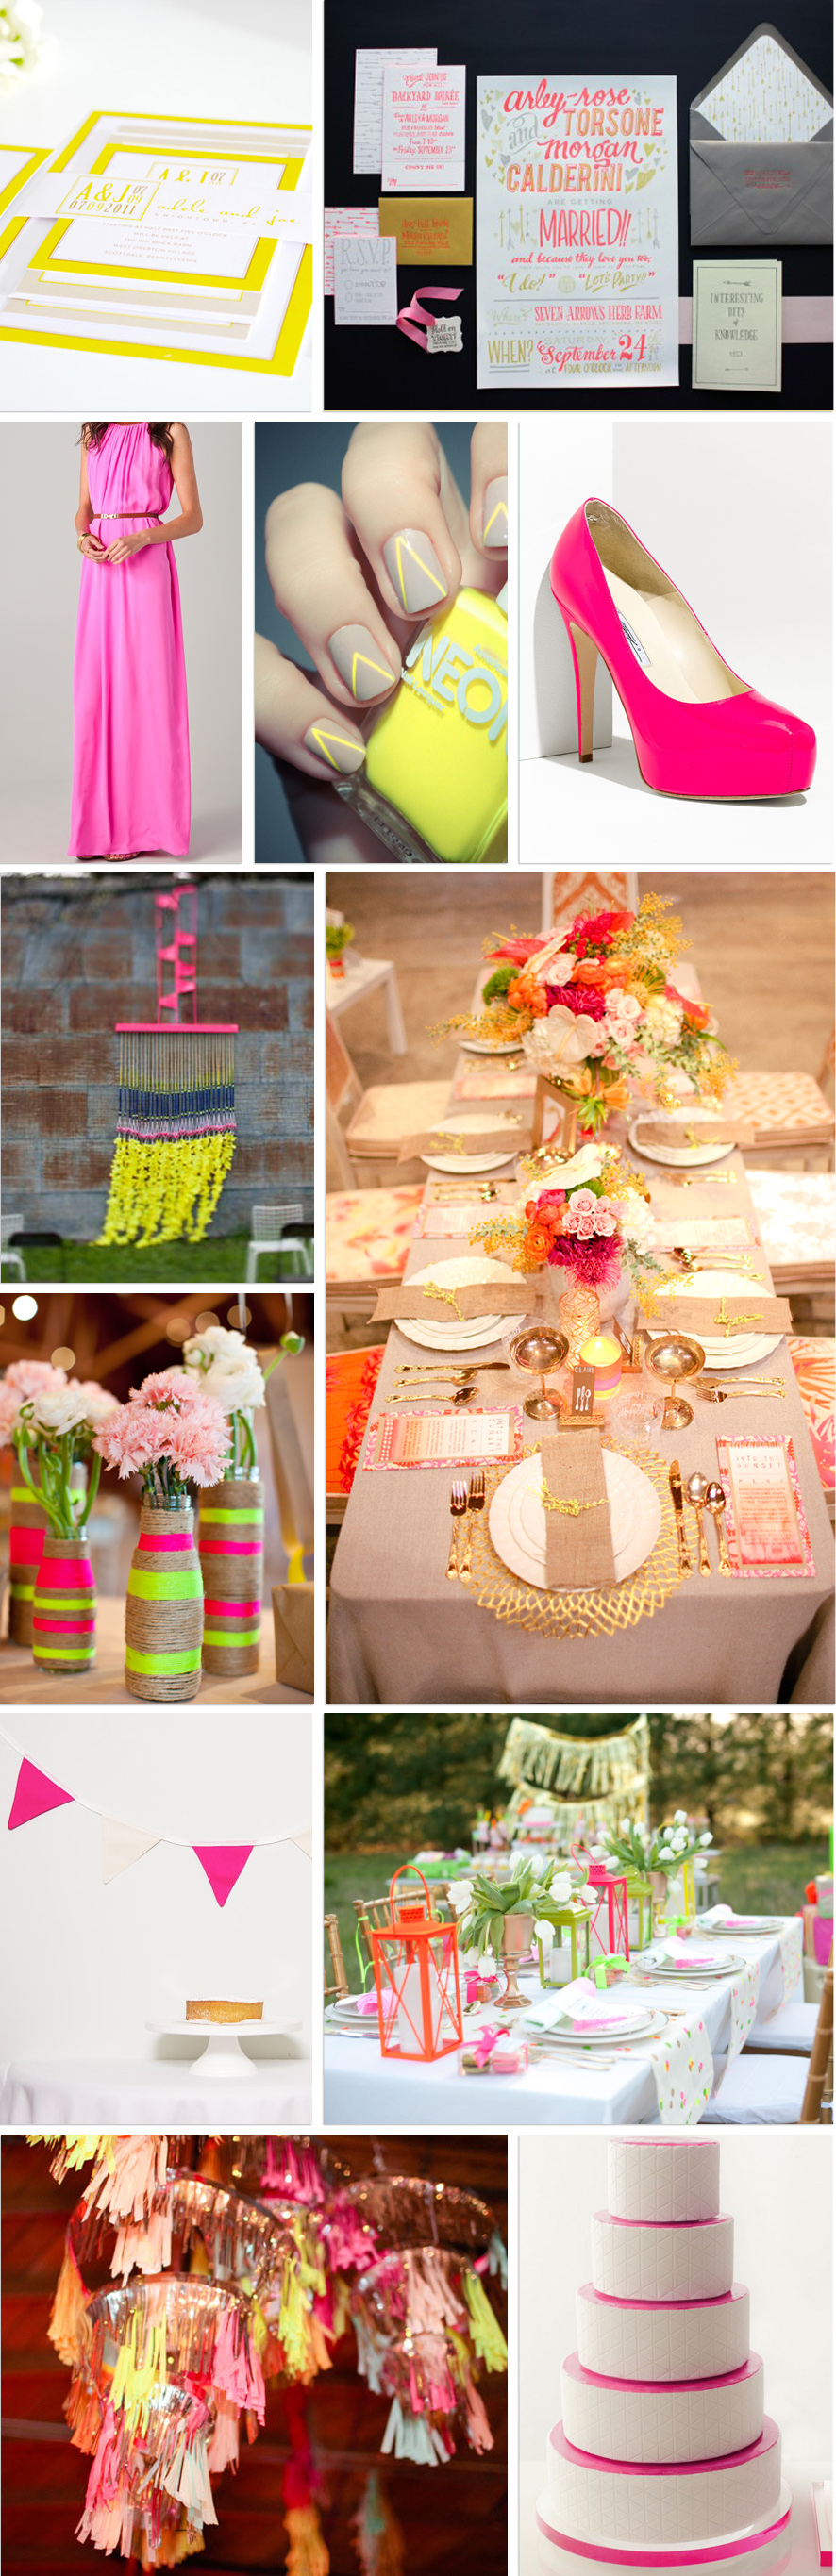 neon invite wedding bridesmaid dress nails shoes ceremony backdrop tablescape twine bunting lanterns fringe chandeliers cake